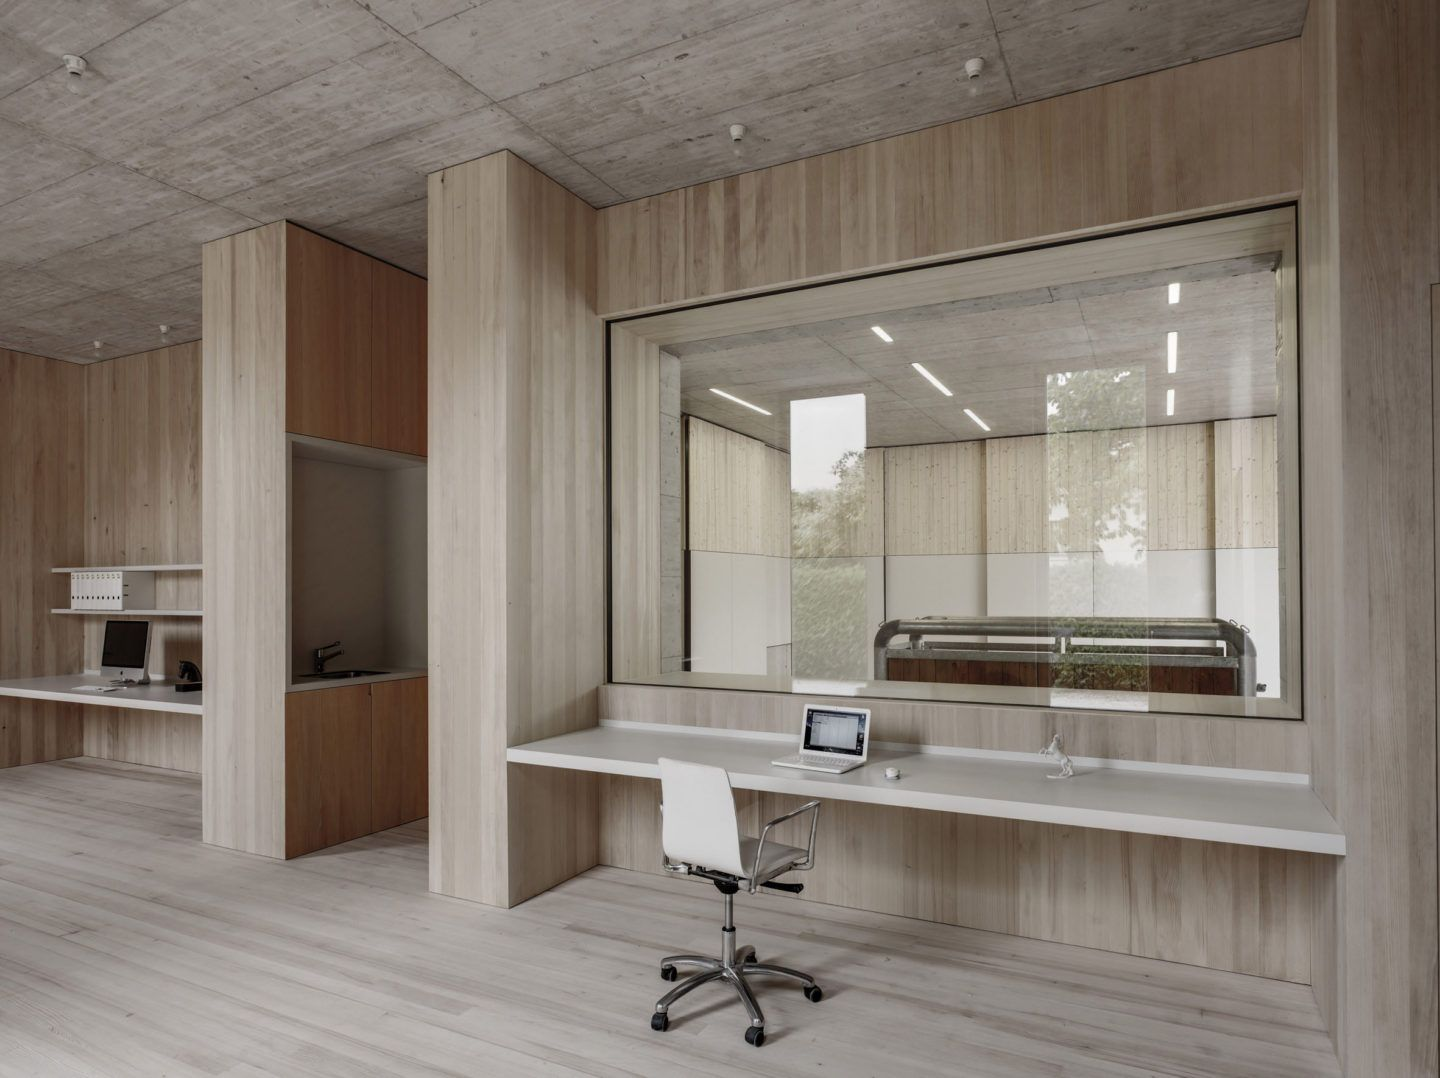 IGNANT-Architecture-Marte.Marte.-Architects-Veterinary-Clinic-5